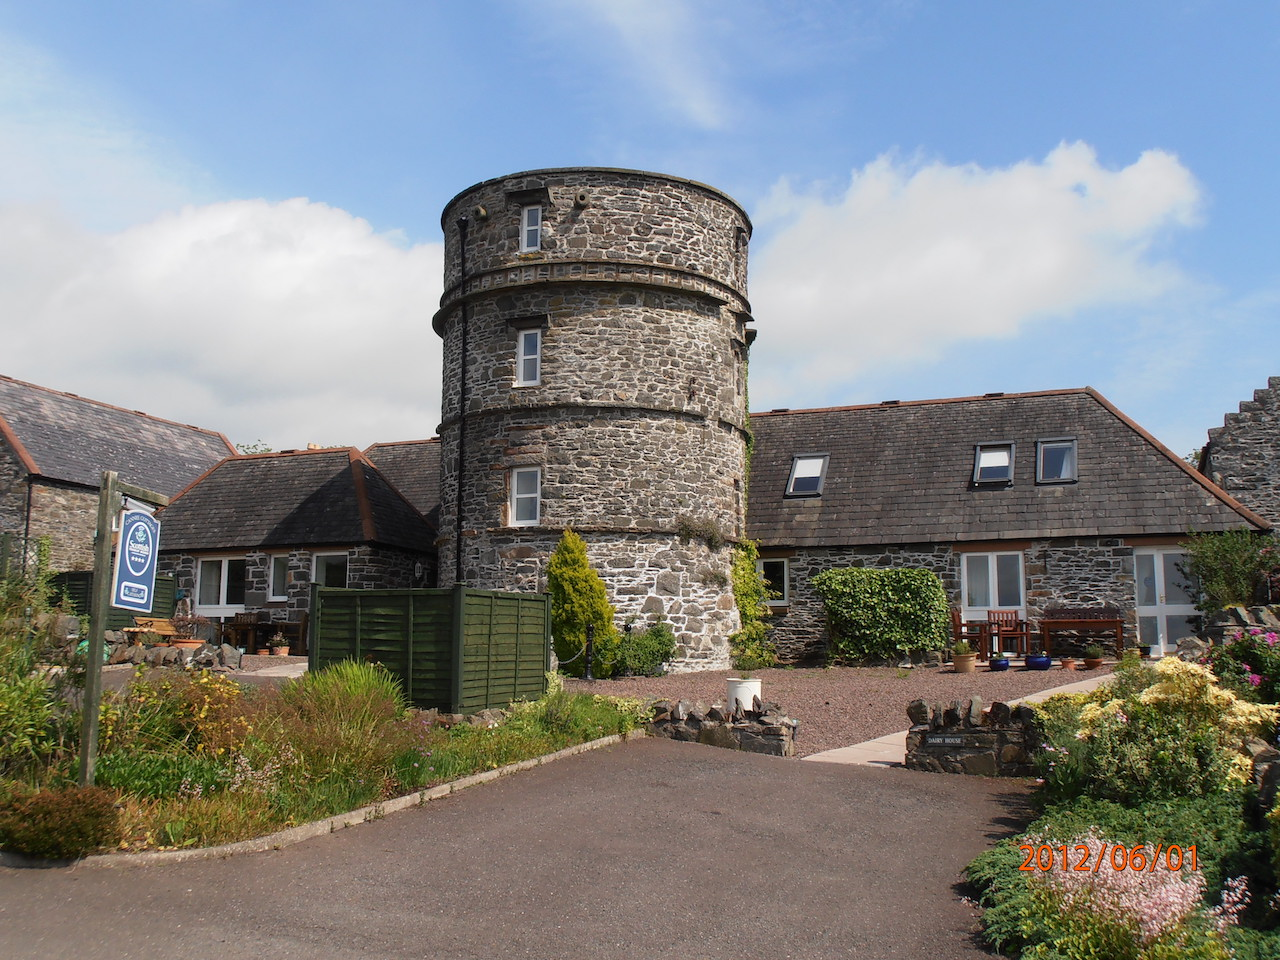 The old cider tower at The Dairy House Kirkcudbright